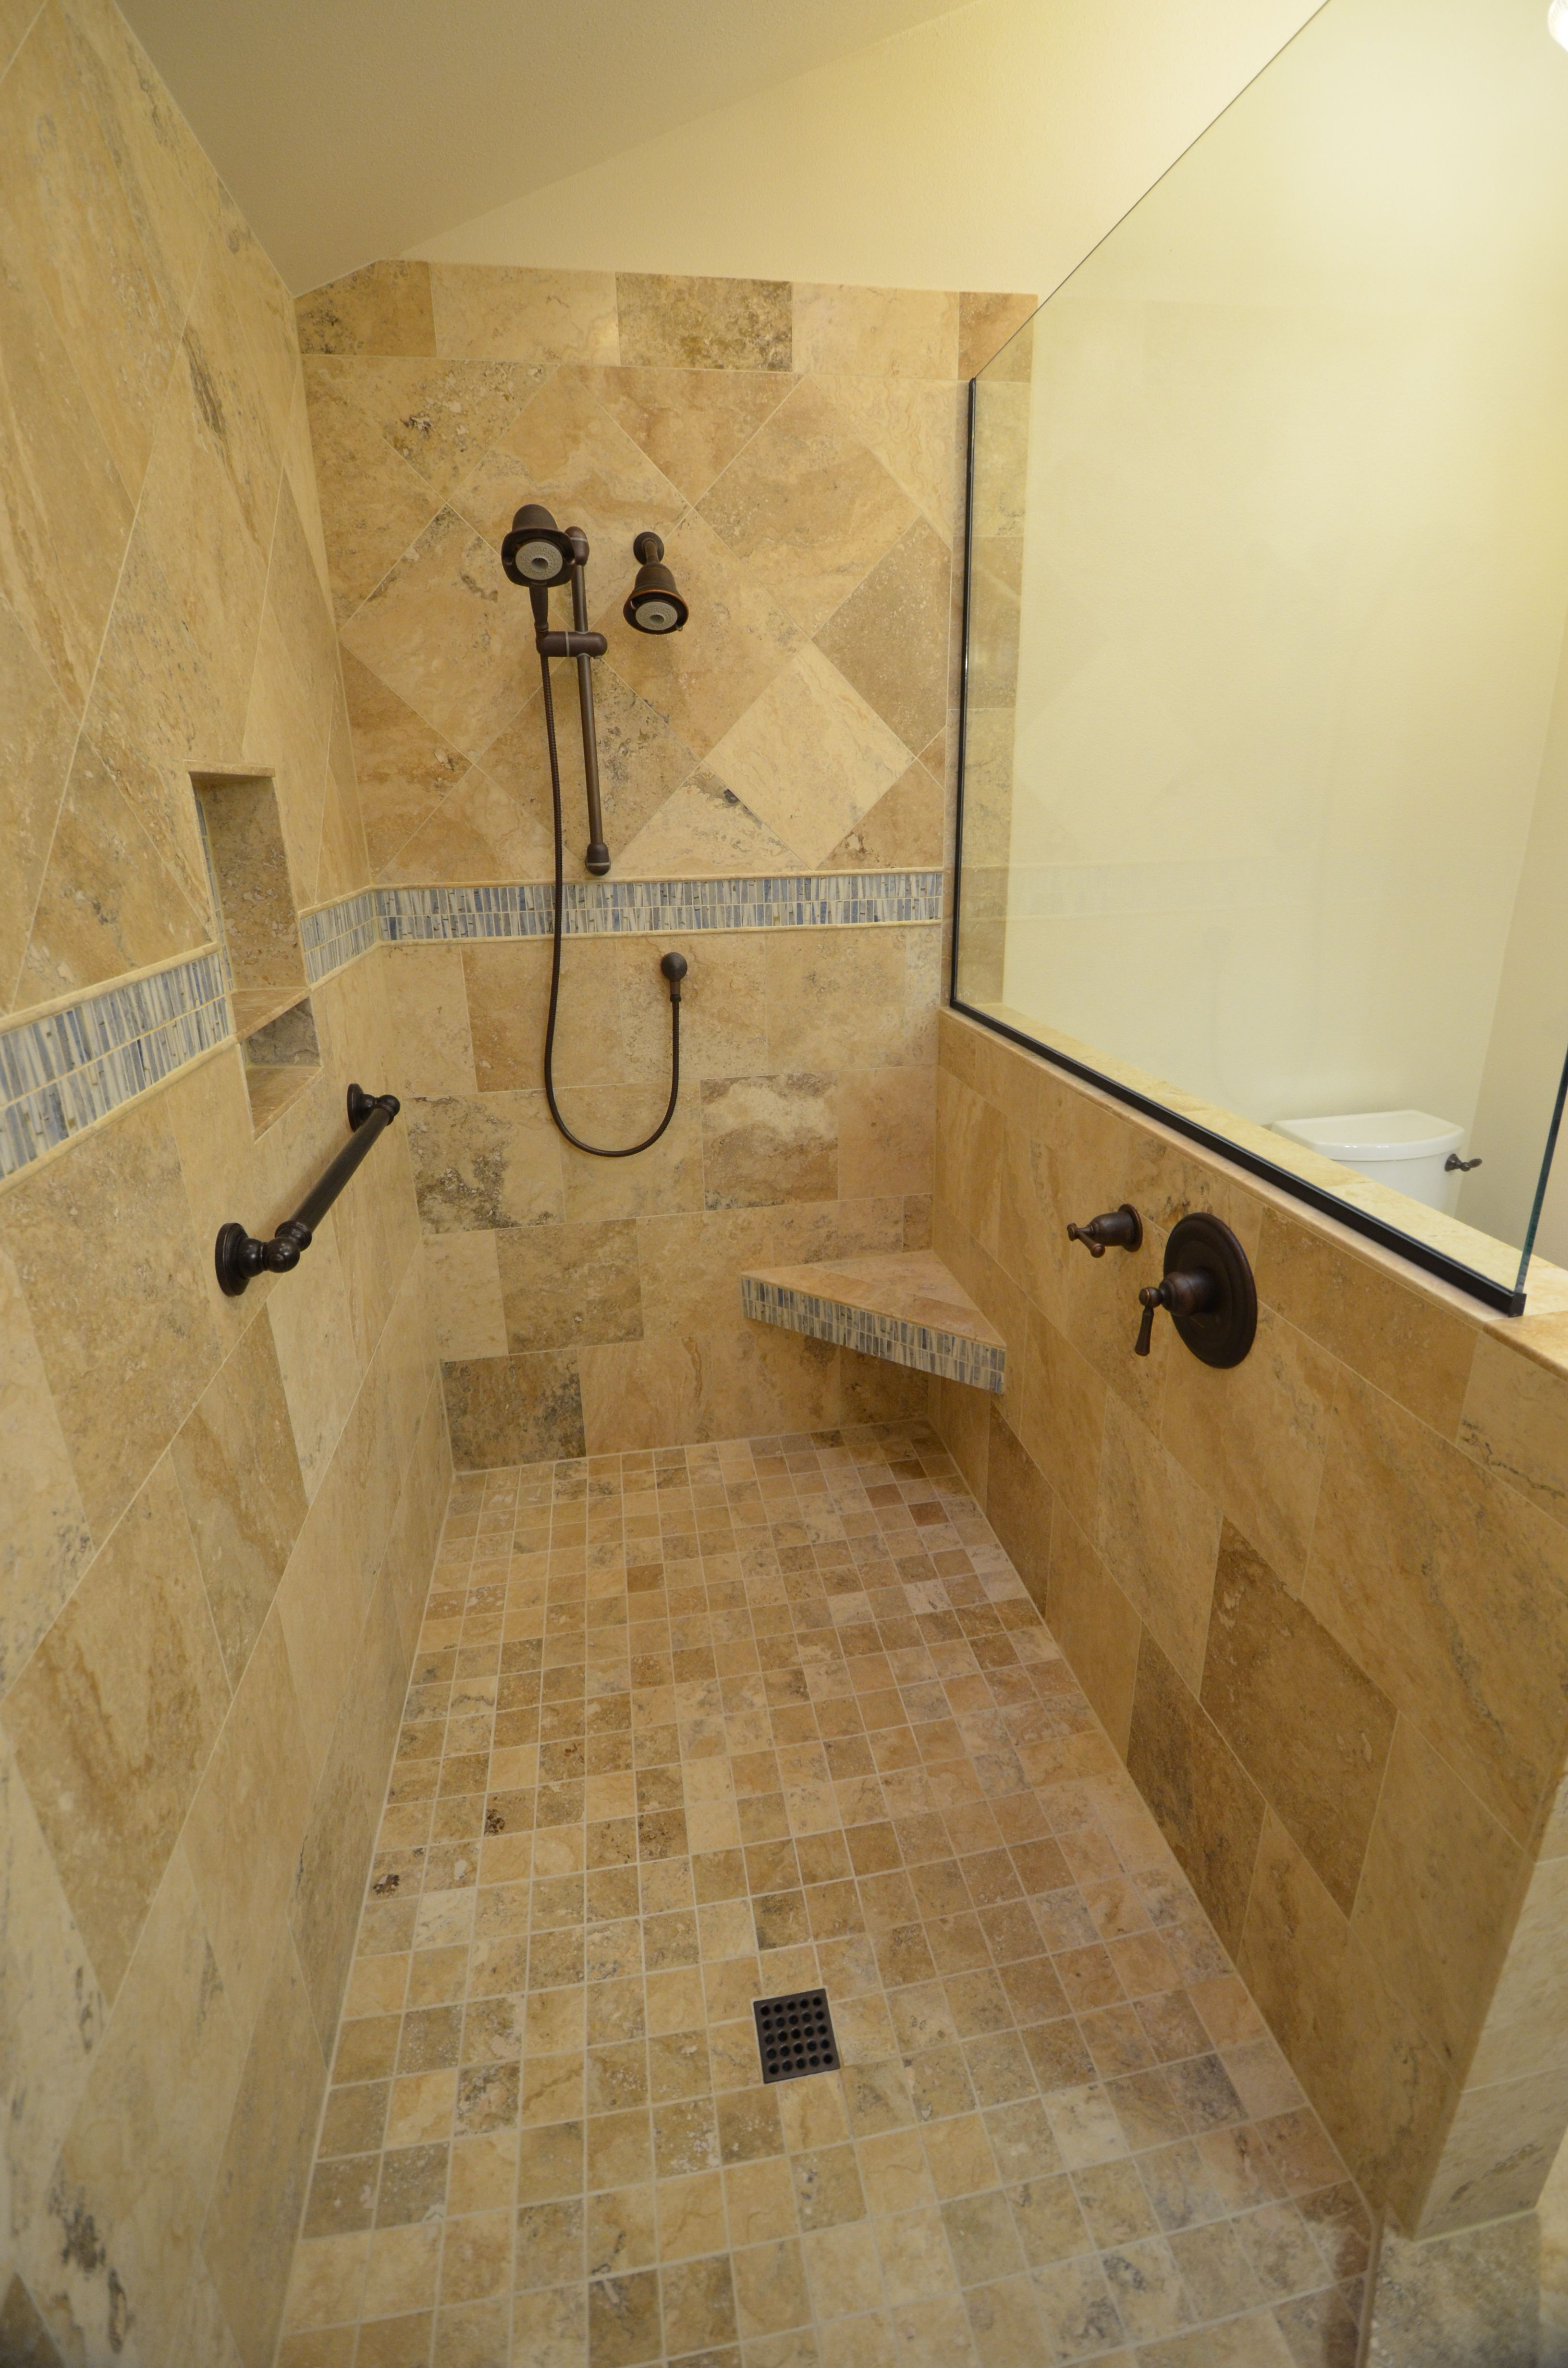 Shower Designs Pictures Pin By Aly Sweet On Tile Shower Ideas In 2019 Pinterest